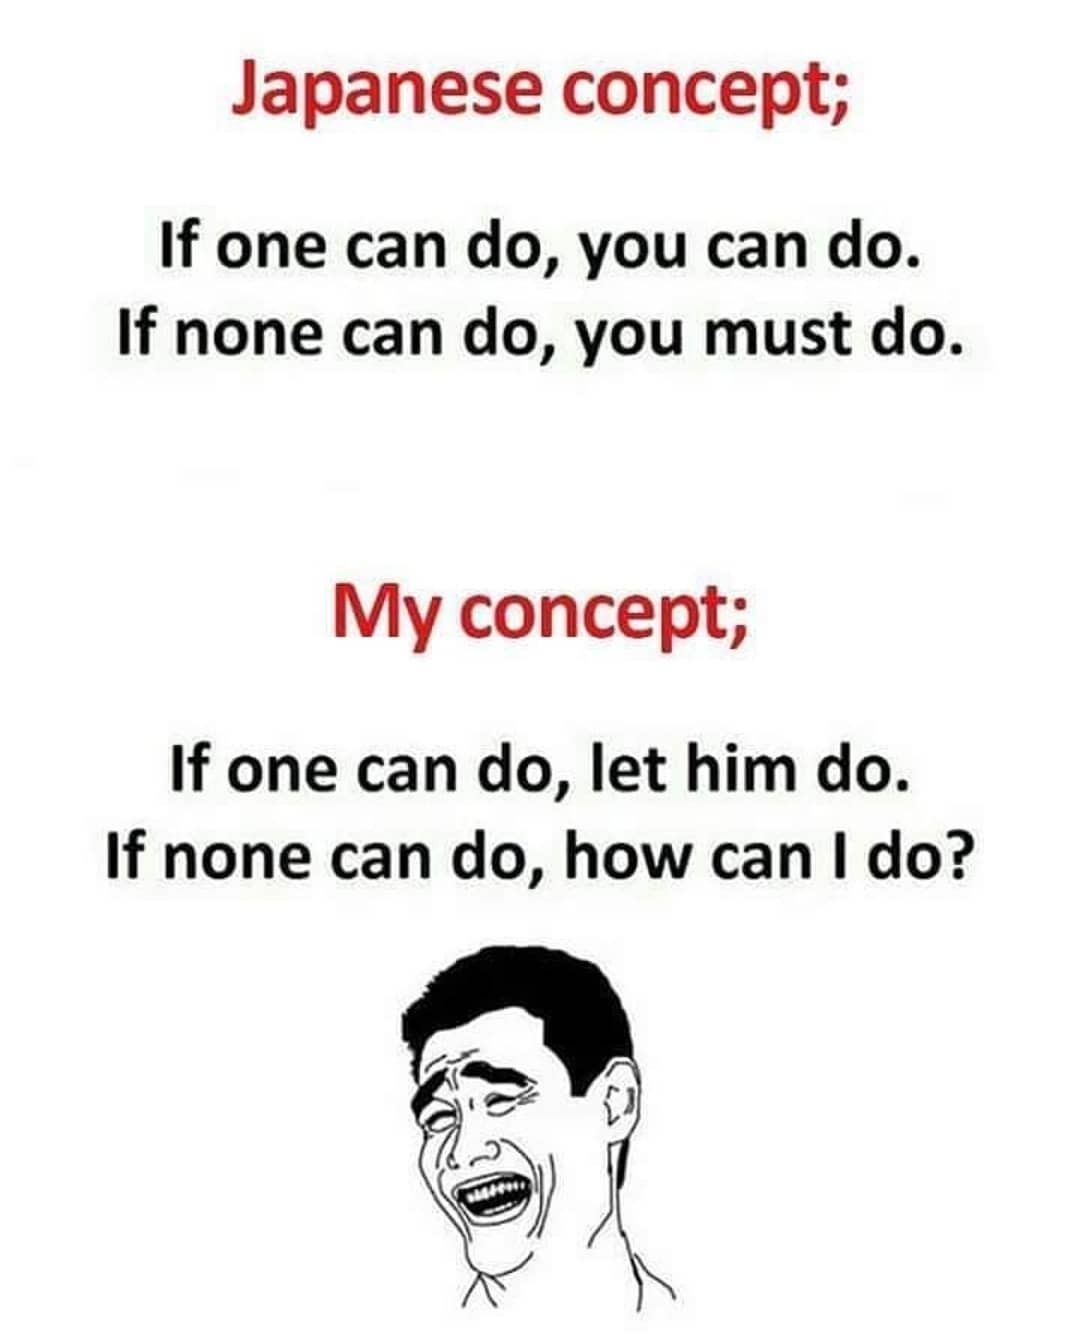 Japanese Concept And My Concept School Quotes Funny Friends Quotes Funny Fun Quotes Funny